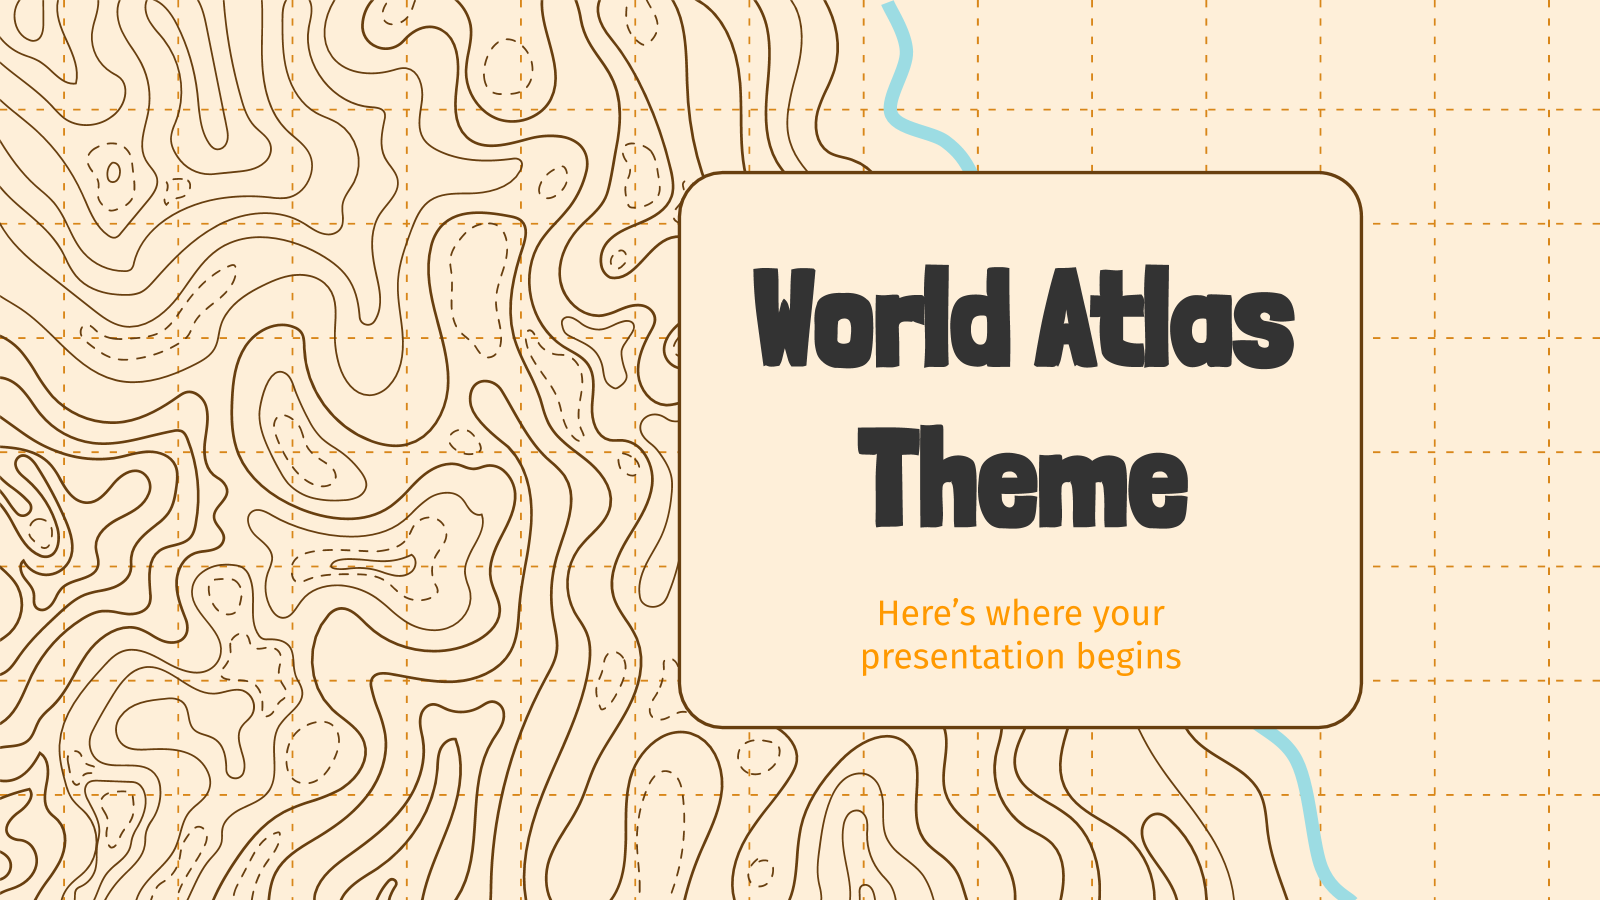 World Atlas Theme presentation template